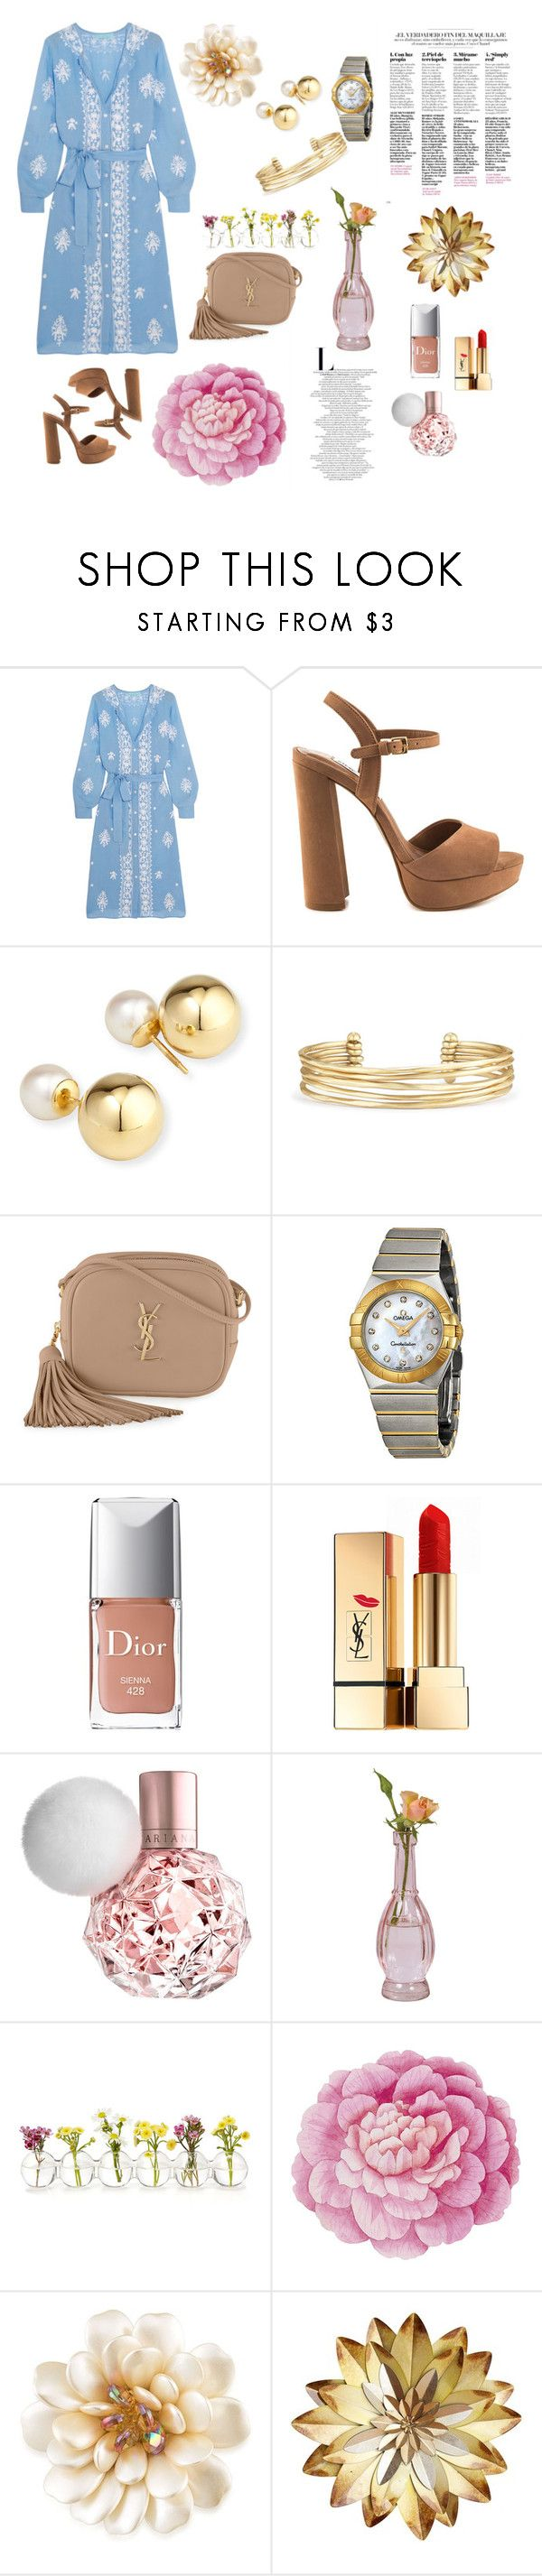 """Eid Outfit"" by hessah-aladwani on Polyvore featuring Melissa Odabash, Steve Madden, Yoko London, Stella & Dot, Yves Saint Laurent, OMEGA, Christian Dior, Ballard Designs and Carolee"